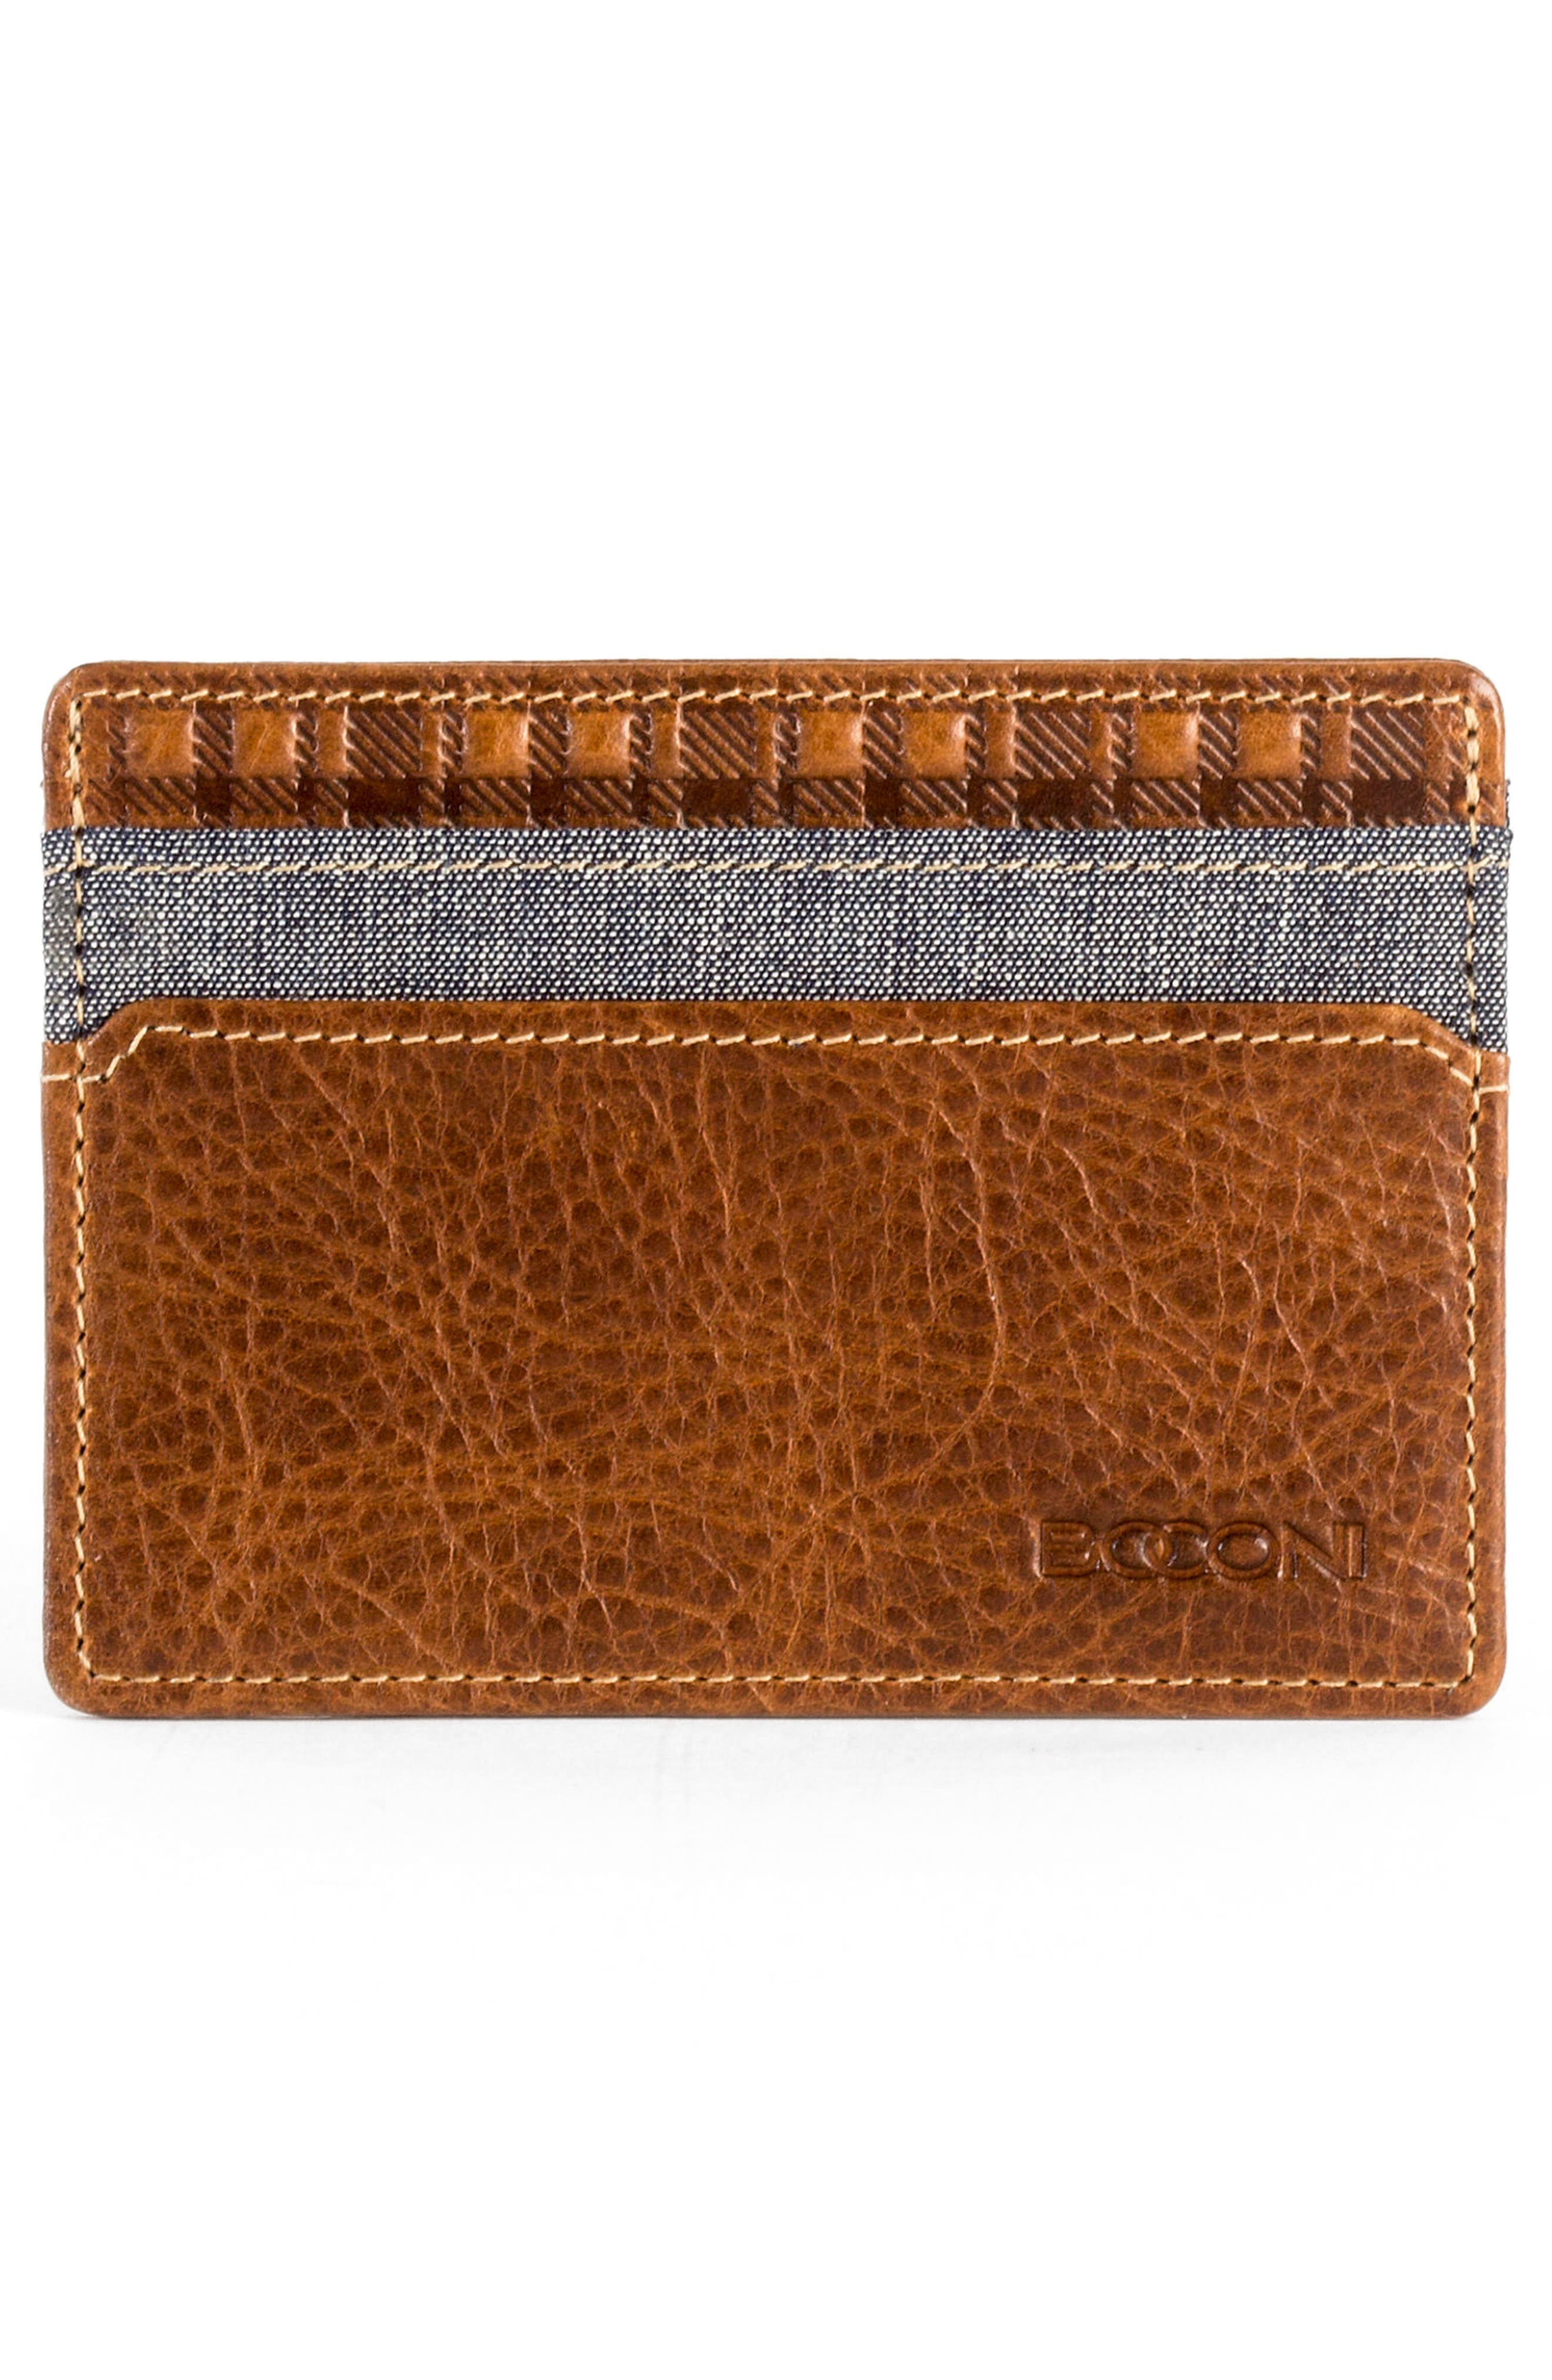 Caleb LTE Leather Card Case,                             Alternate thumbnail 2, color,                             Chestnut/ Chambray